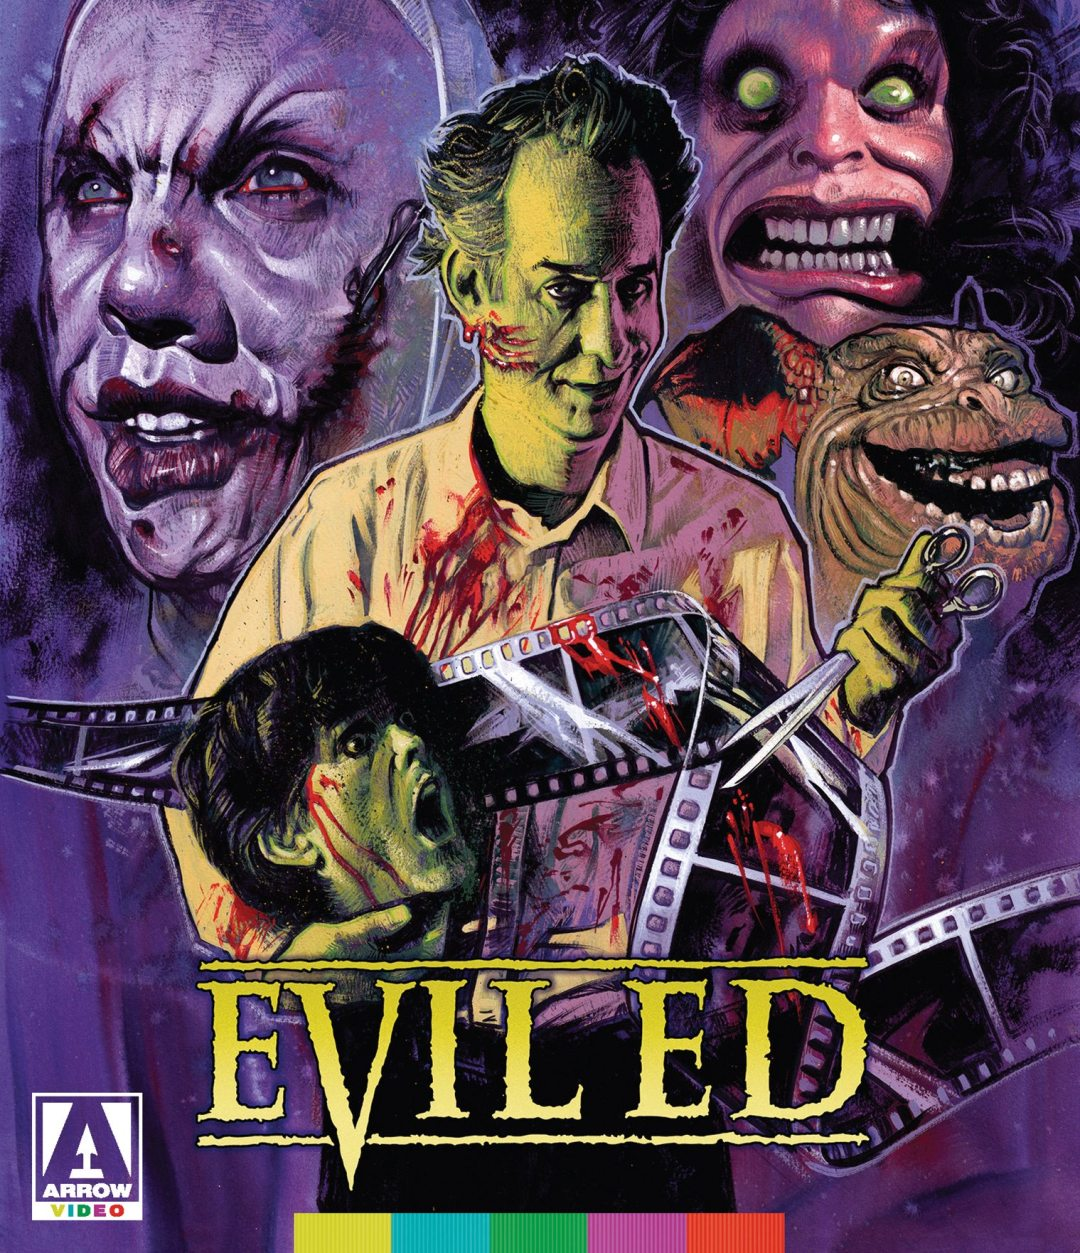 Evil Ed – Blu-ray/DVD Release on May 30th, 2017